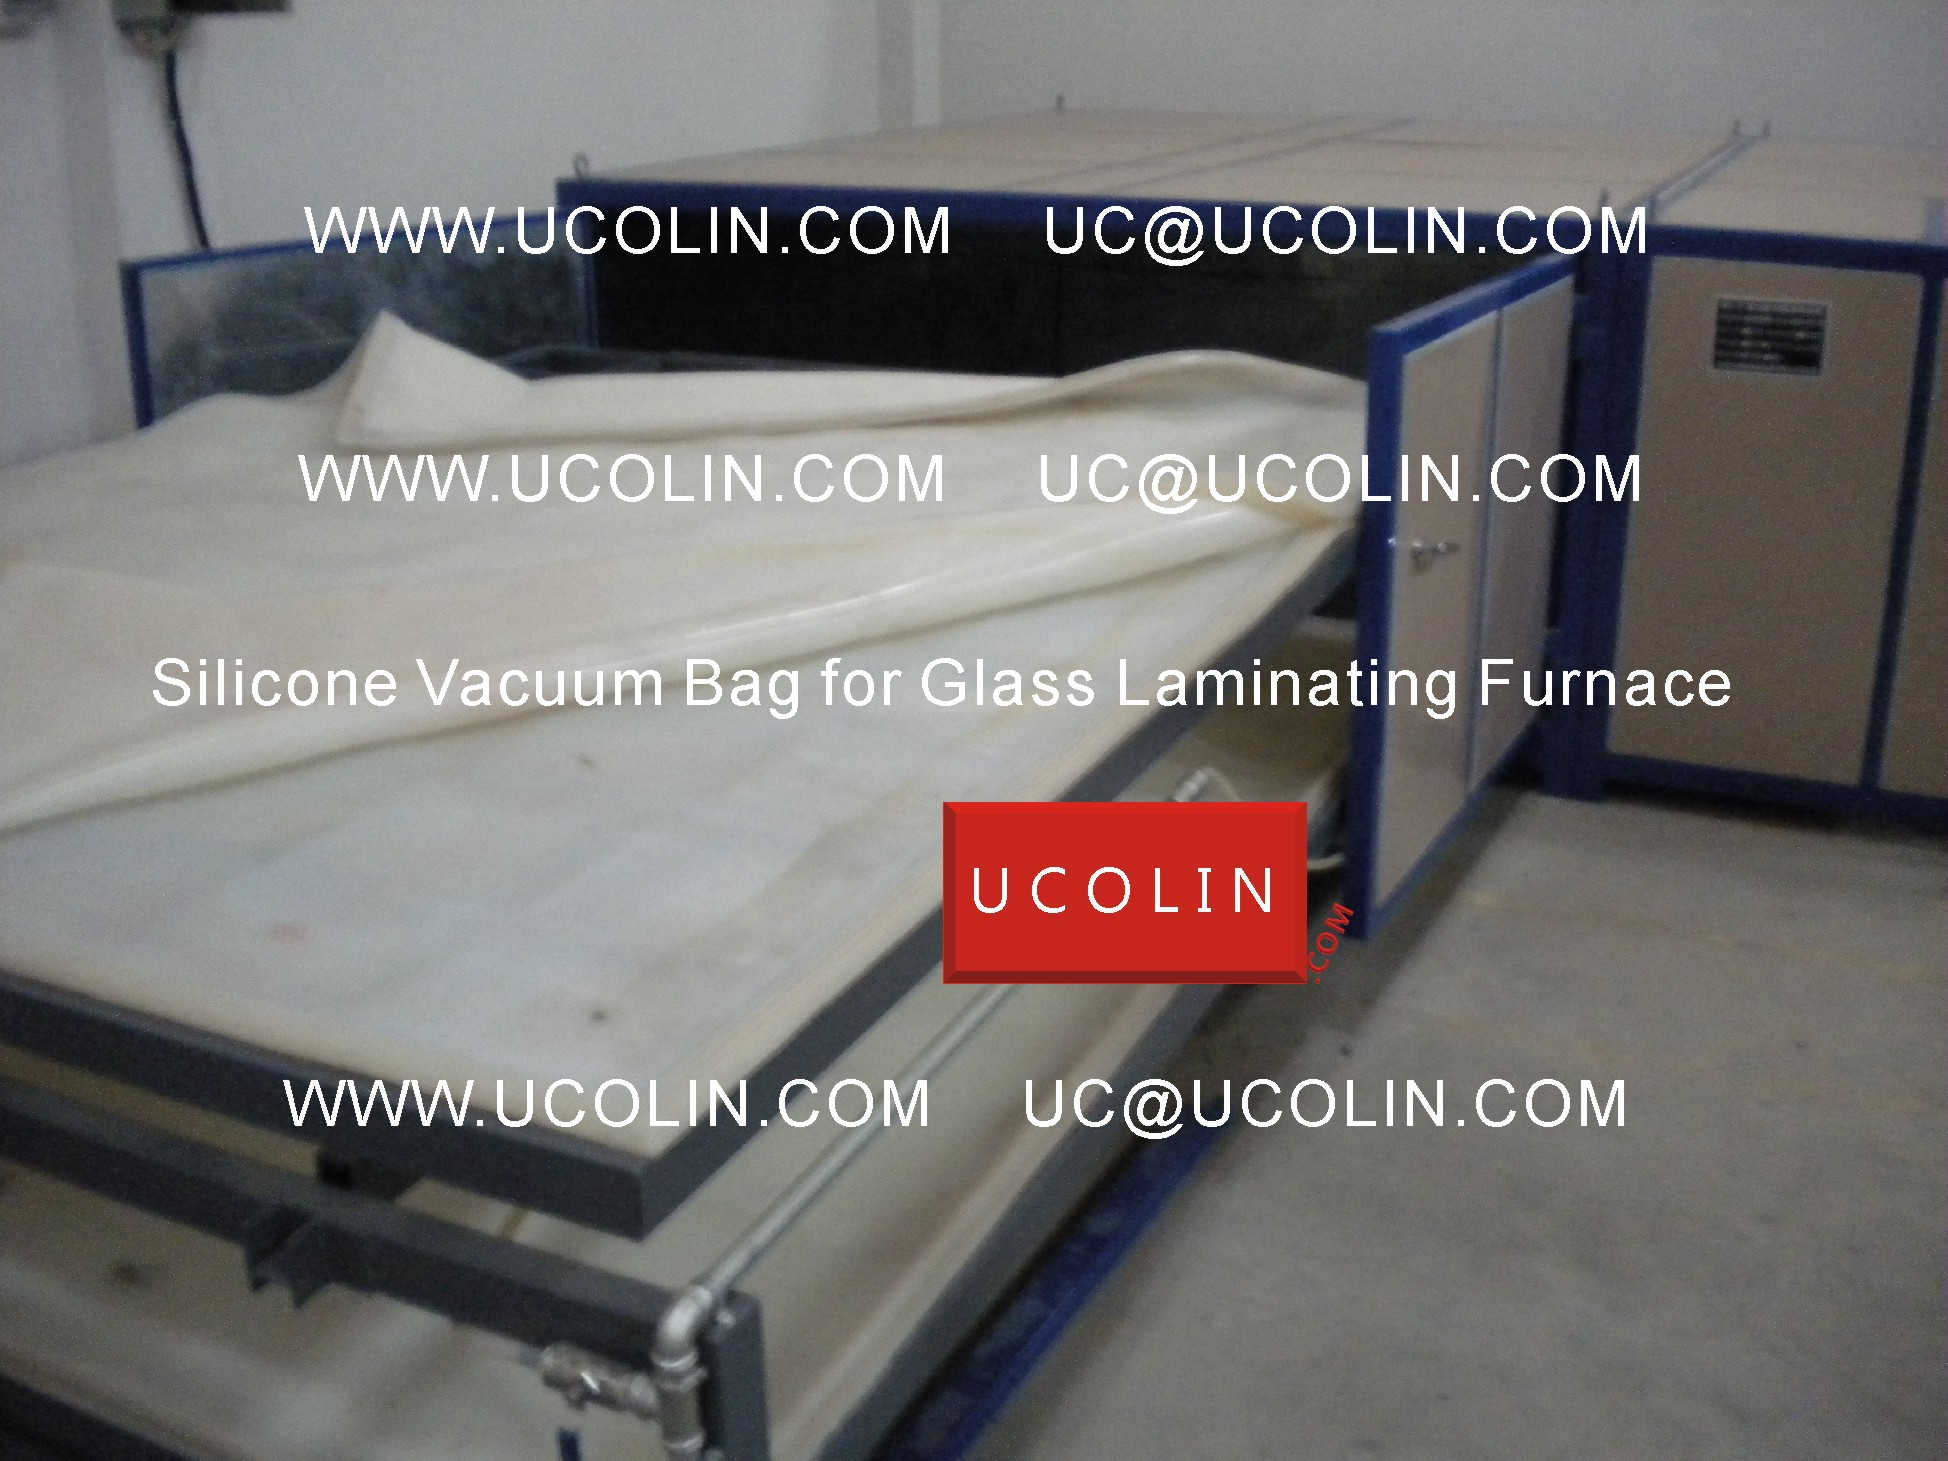 02 Application of Silicone Vacuum Bag for Glass Laminating Furnace